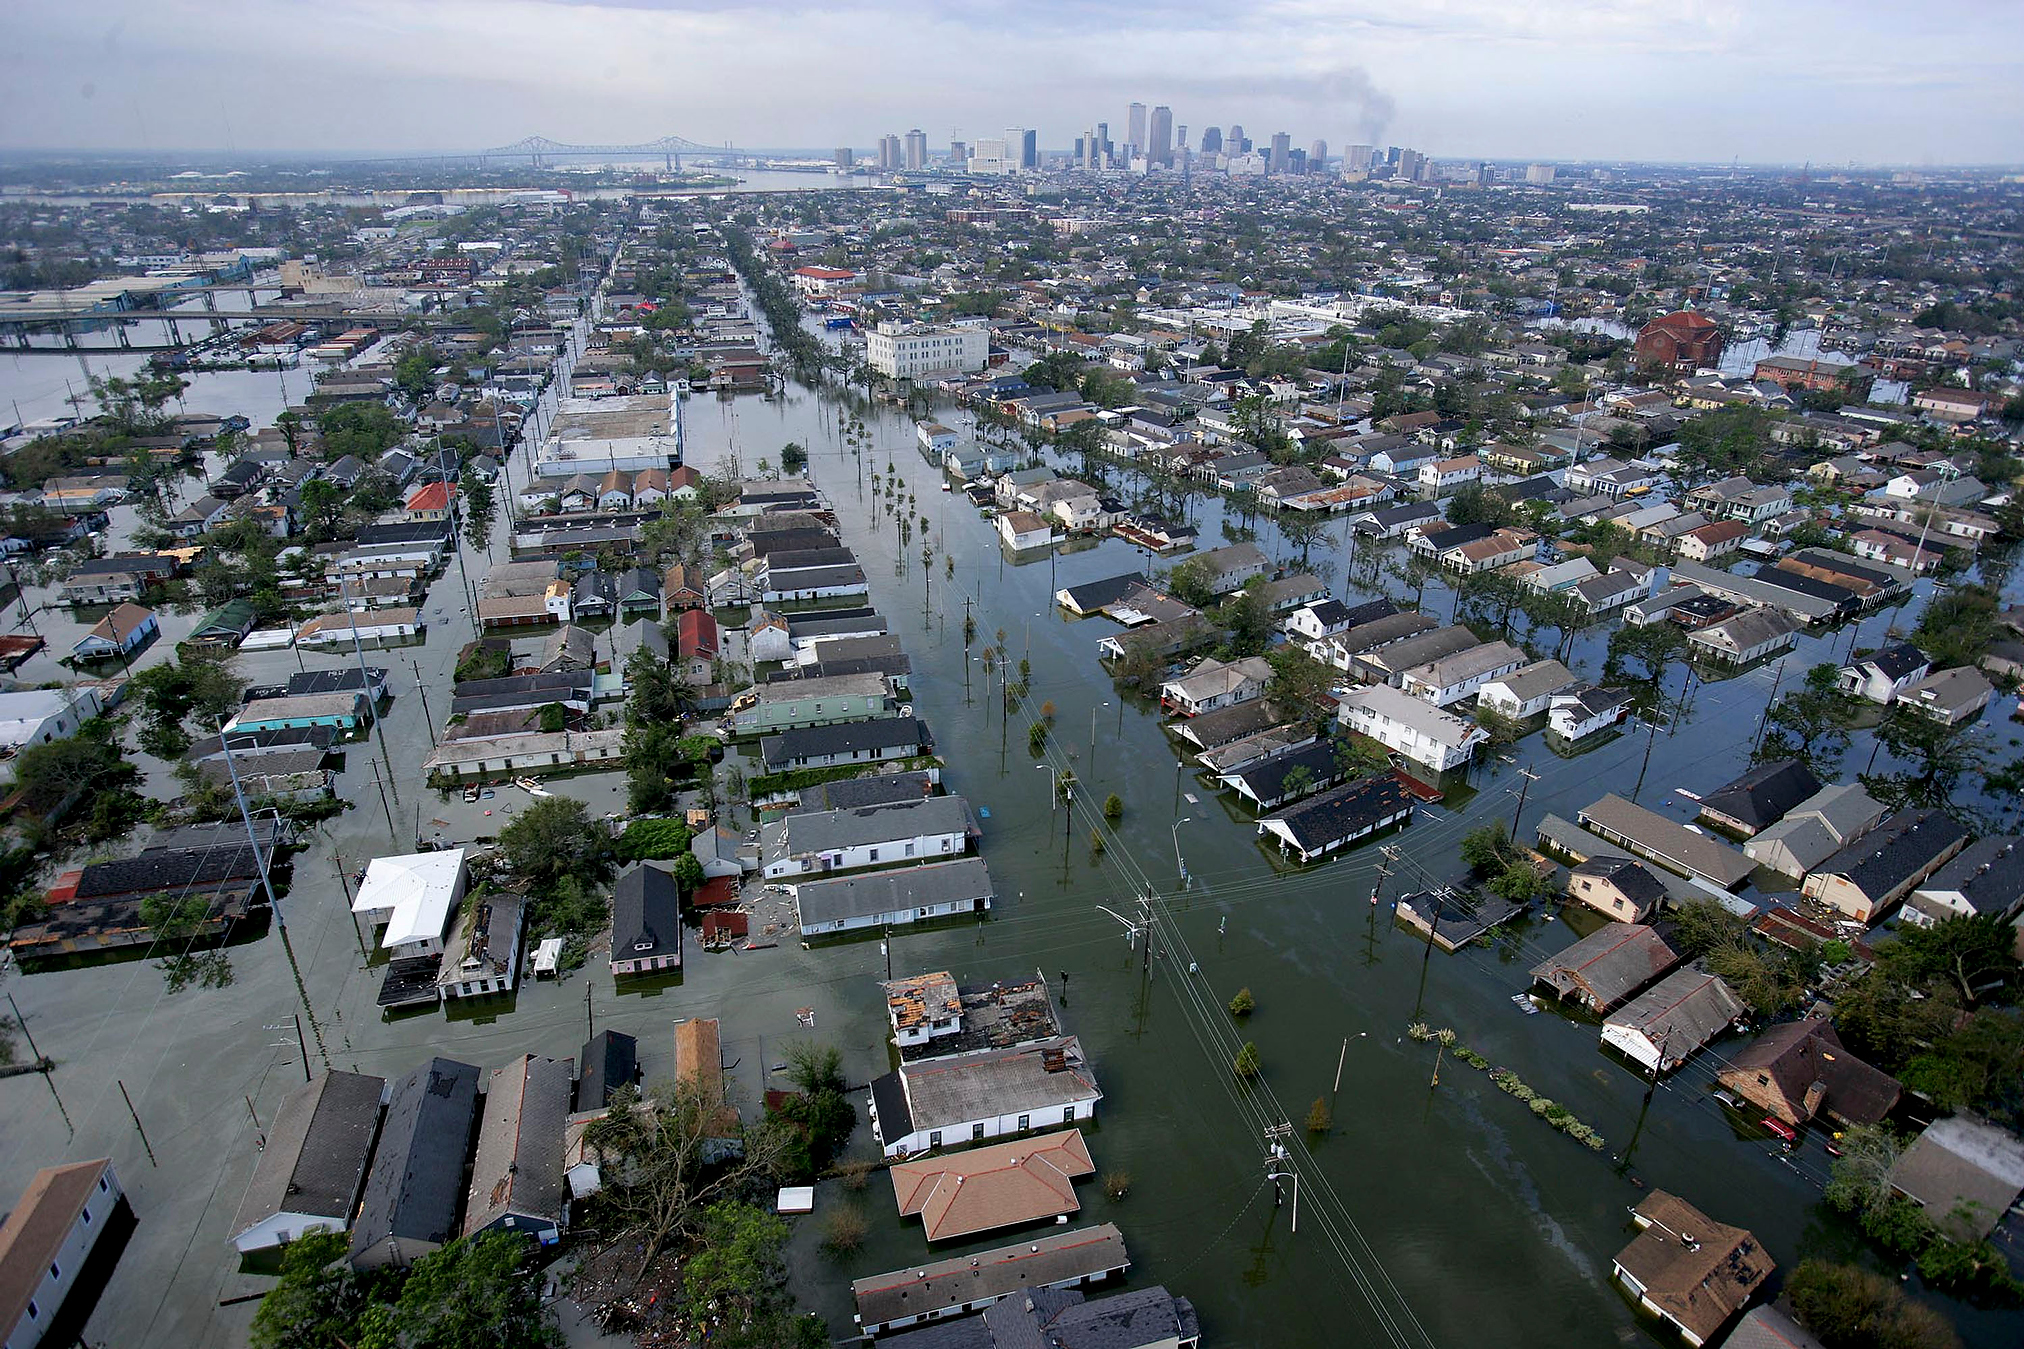 Editors Note This special report was archived in September 2006 Voices from the Gulf Coast August 29 2005 Hurricane Katrina made landfall on the Gulf Coast